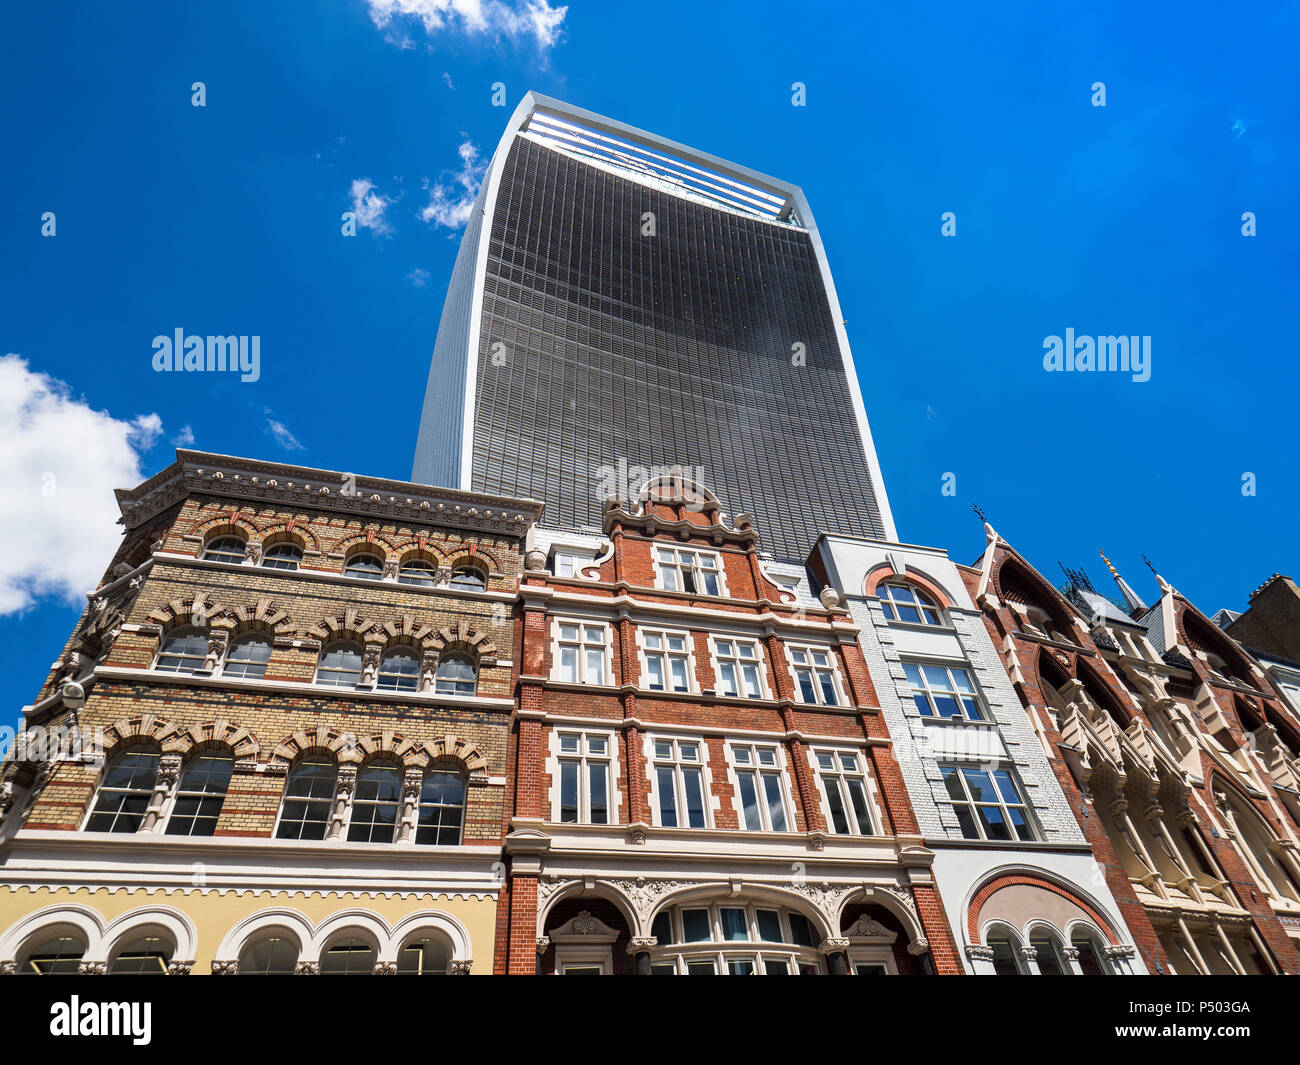 The Walkie Talkie London, 20 Fenchurch Street, architect Rafael Viñoly opened 2015, height 160m, looms over older style buildings on Eastcheap - Stock Image